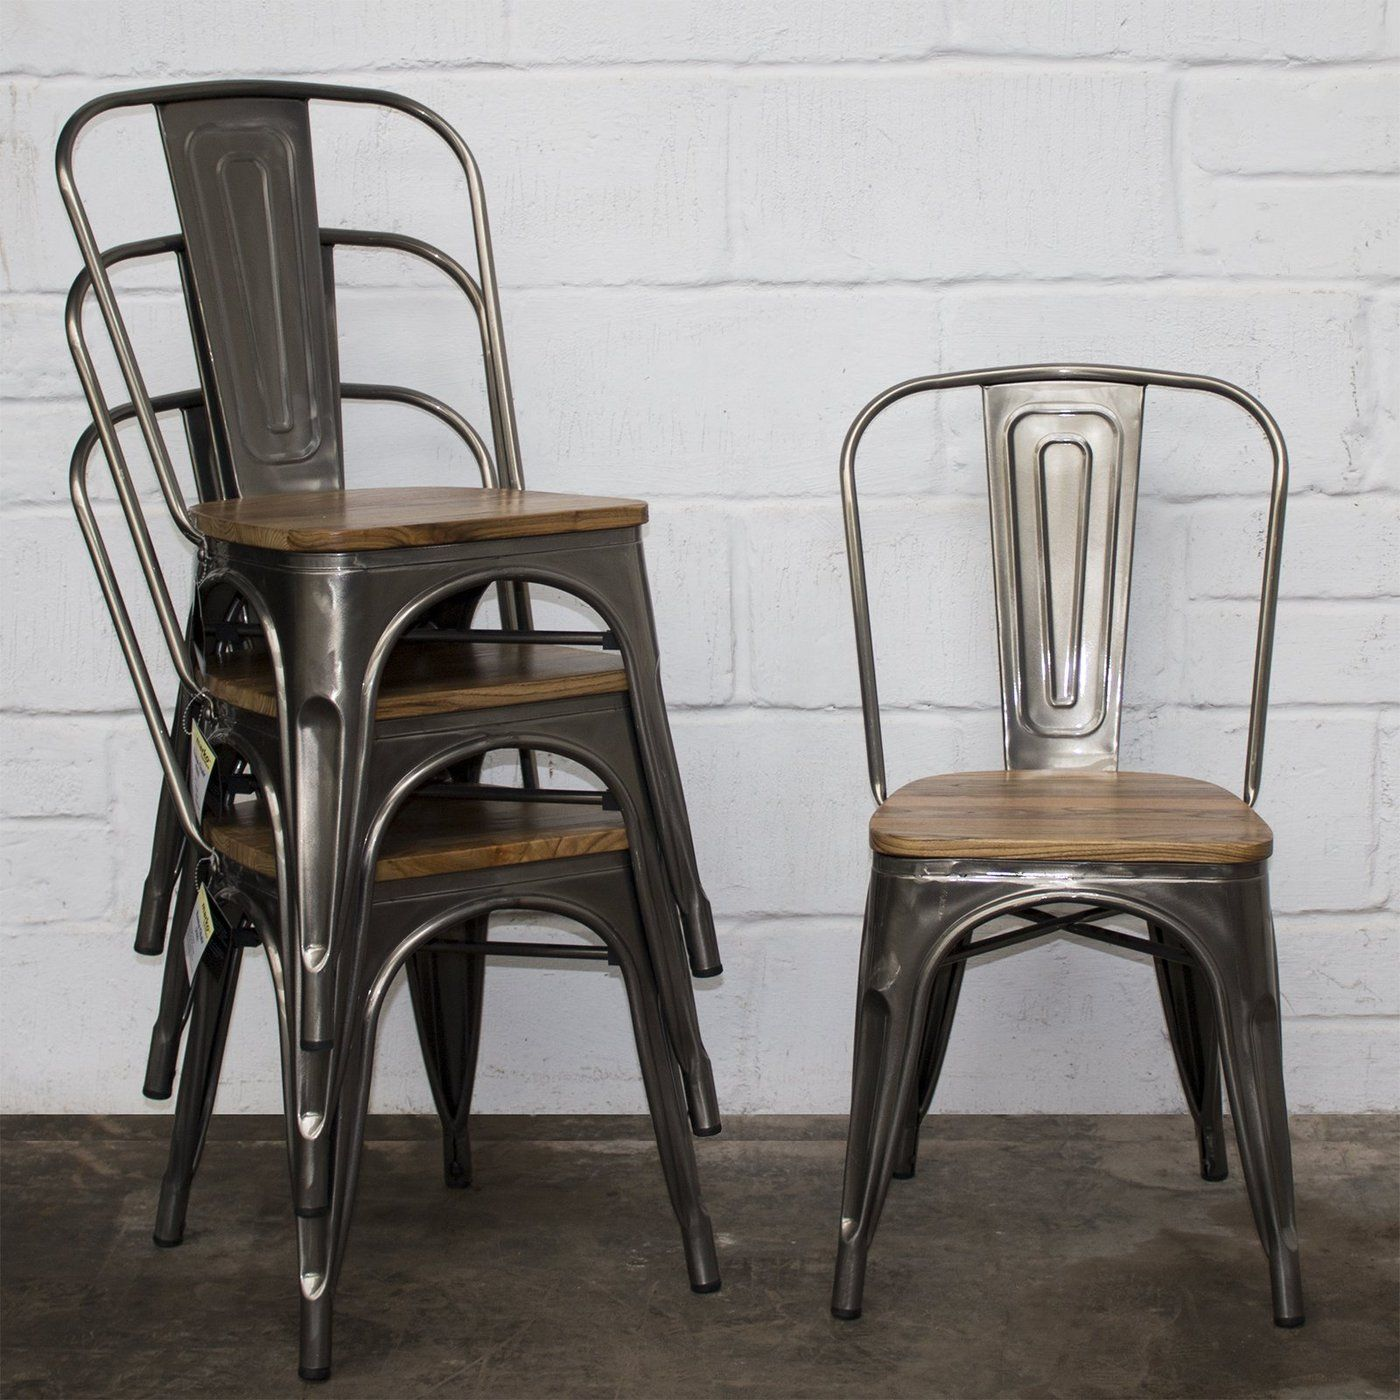 Surprising Palermo Chair Steel In 2019 Home Dining Room Alphanode Cool Chair Designs And Ideas Alphanodeonline